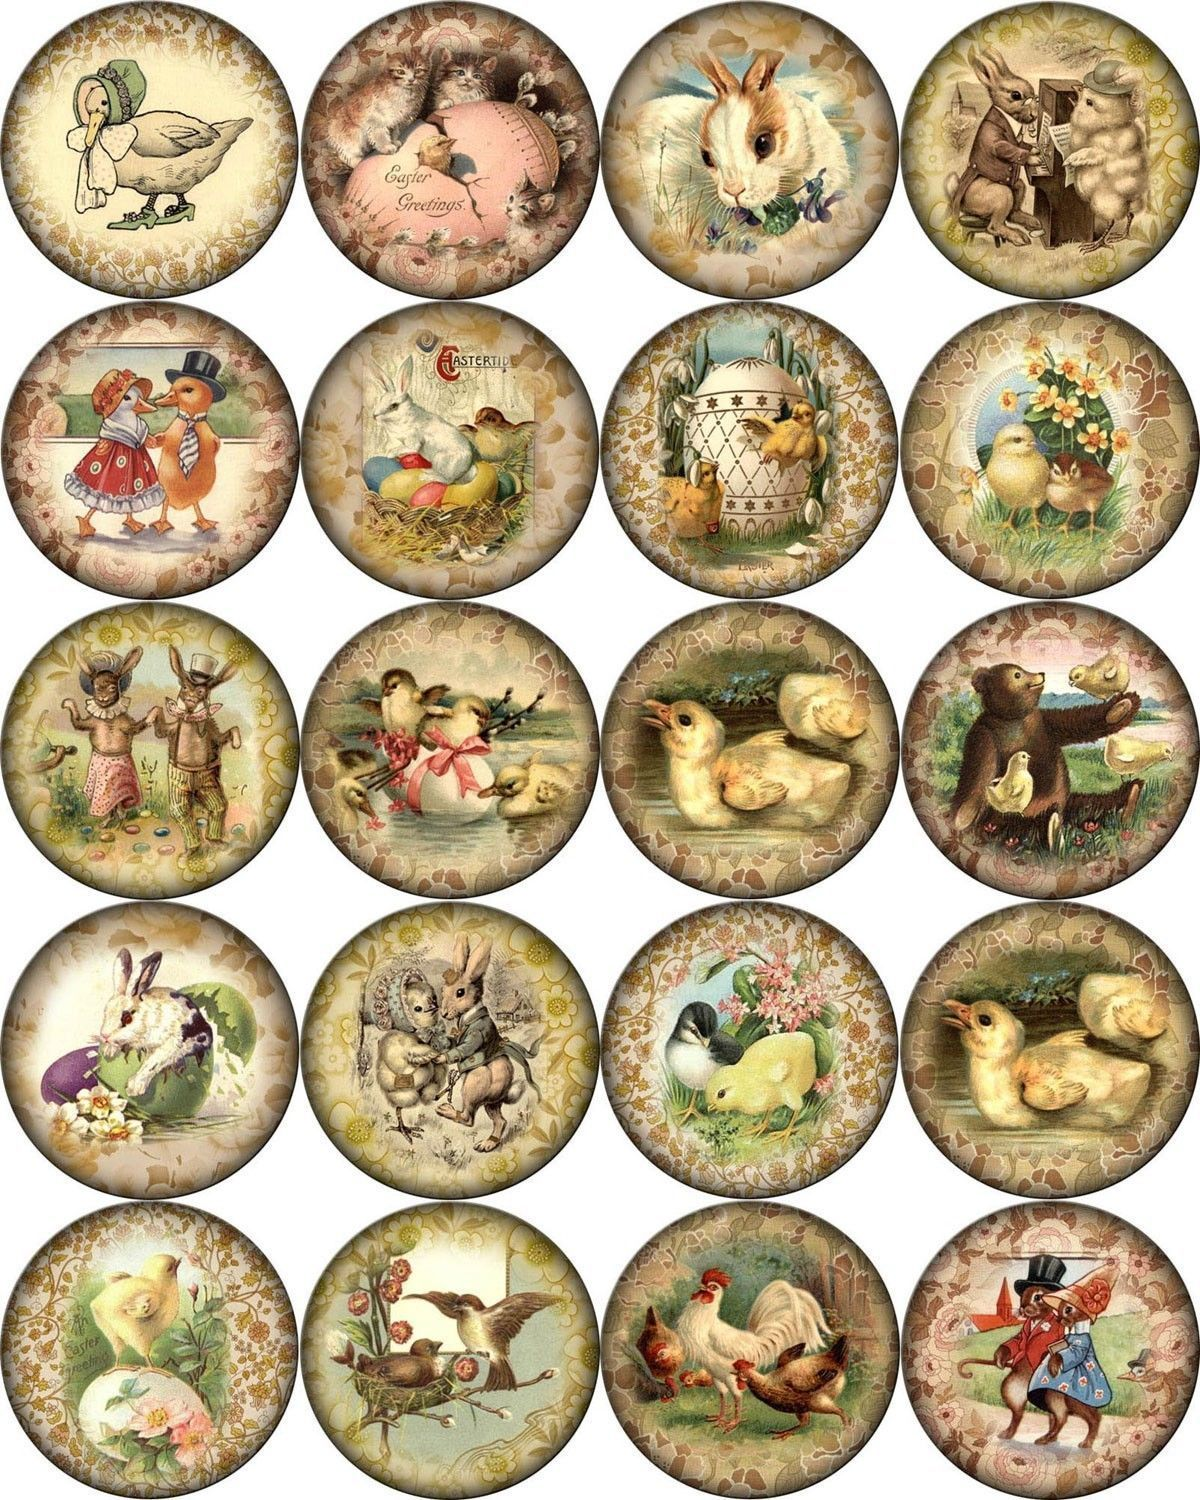 Details About Vintage Easter Pictures On Round Asst Size Bottle Caps 63 1 30 1 5 20 2 2